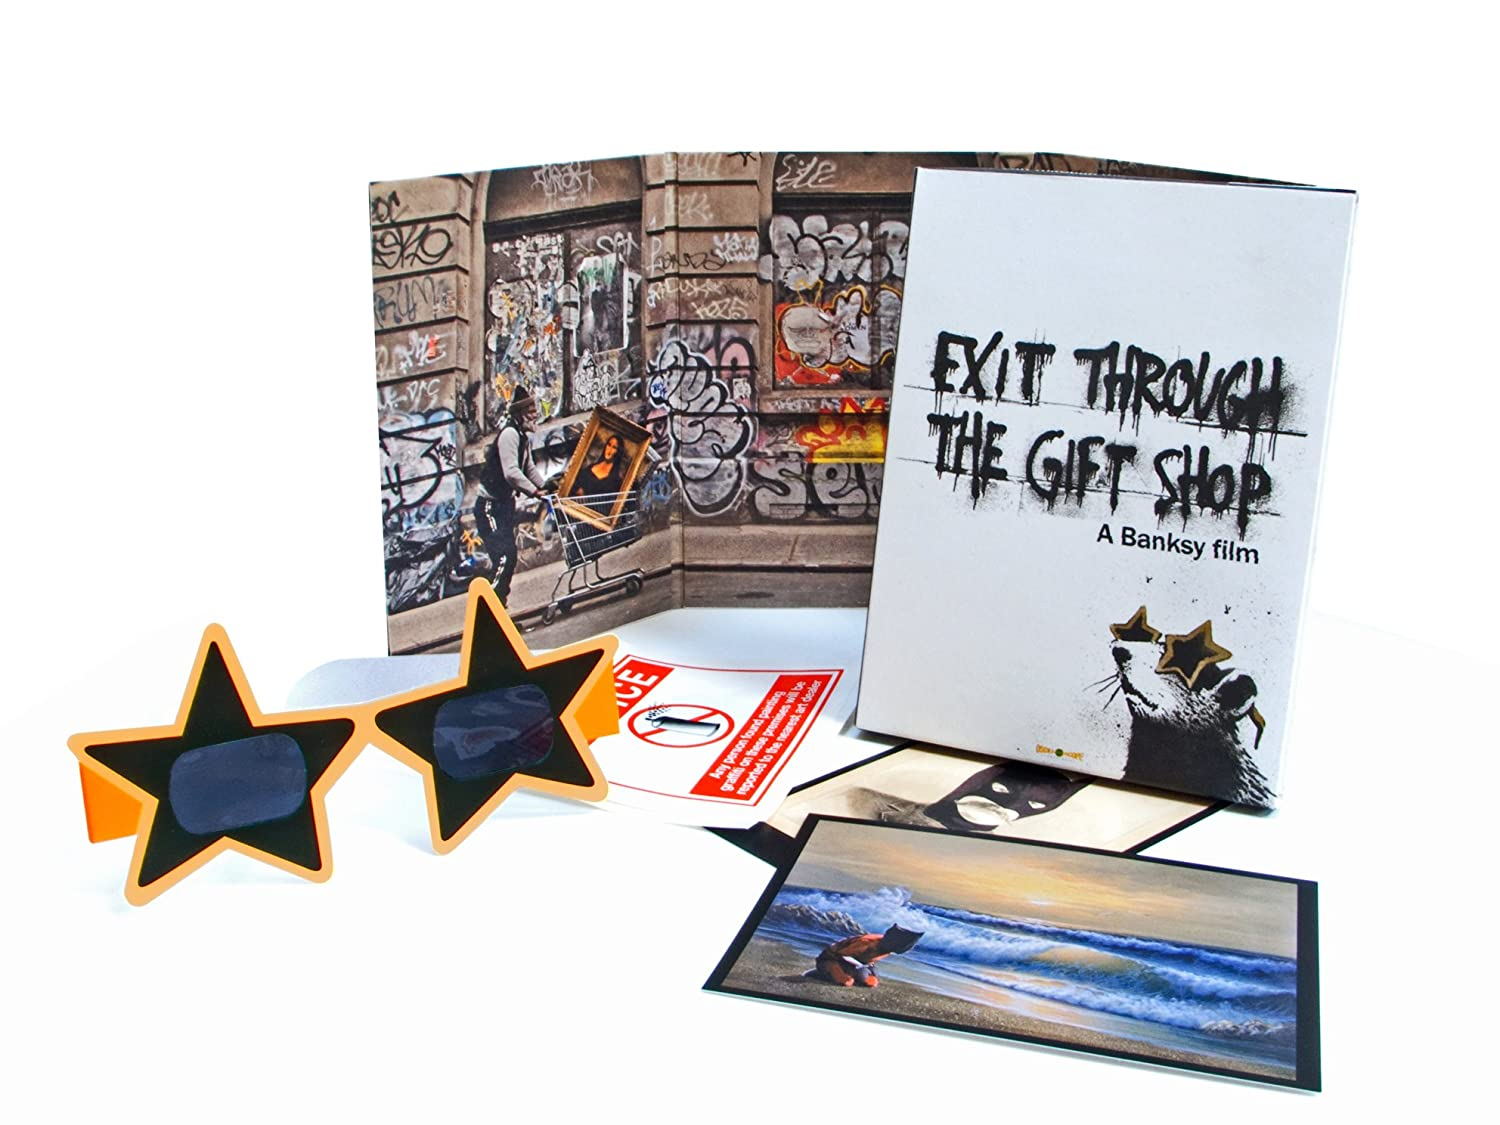 Amazon.com: Exit Through the Gift Shop: Banksy, Thierry Guetta ...